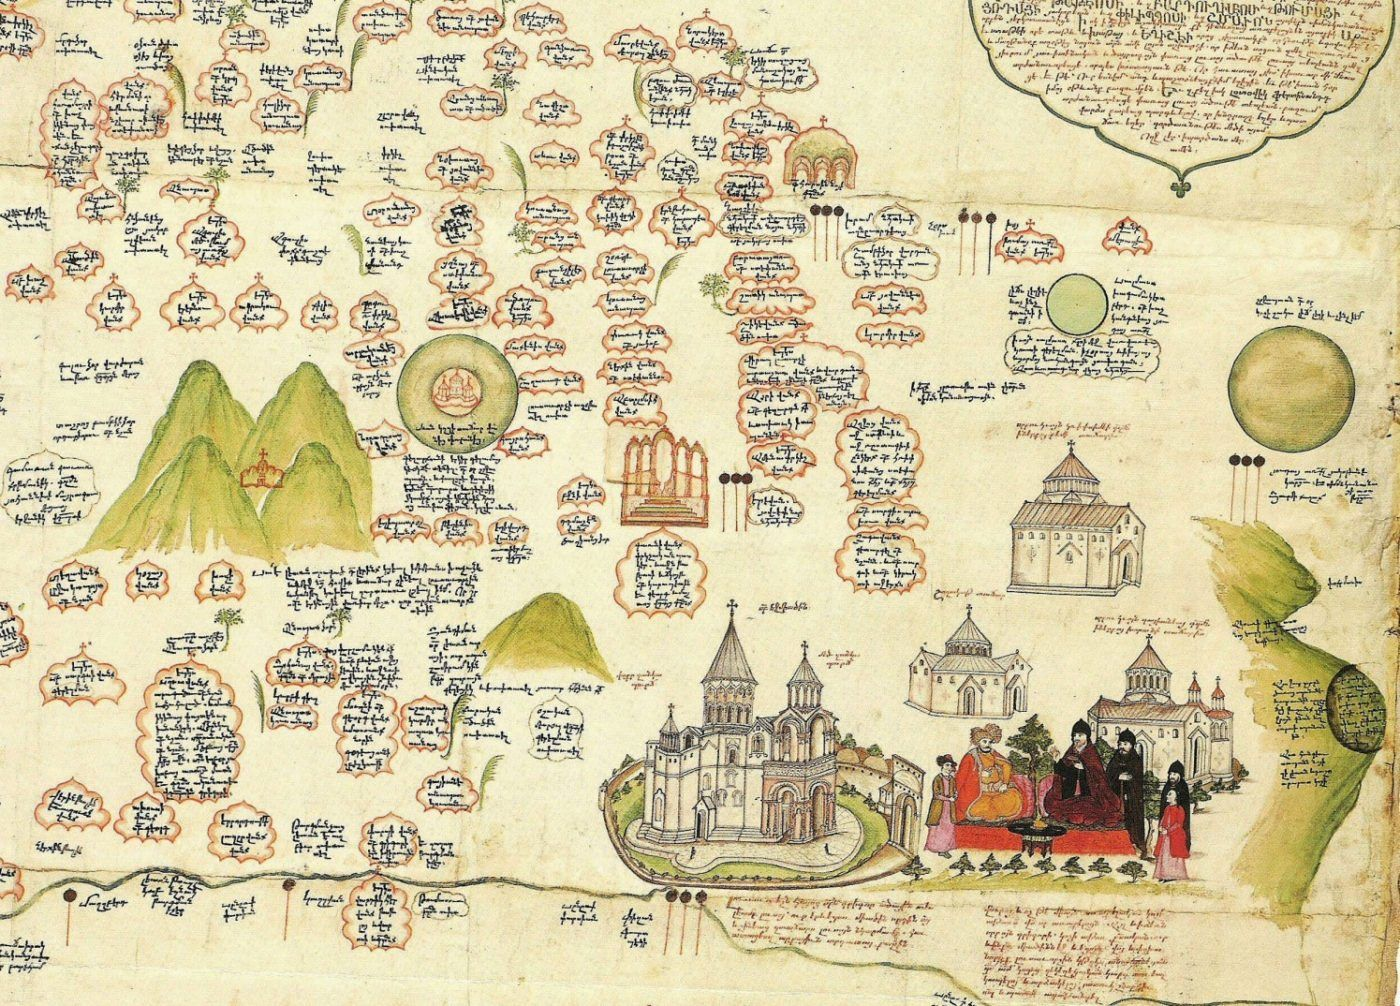 The second oldest Armenian map from 1691 made in in Constantinople. The author is a famous Armenian scholar and politician Eremia Cheleby Keomurjian. (Armenian maps)